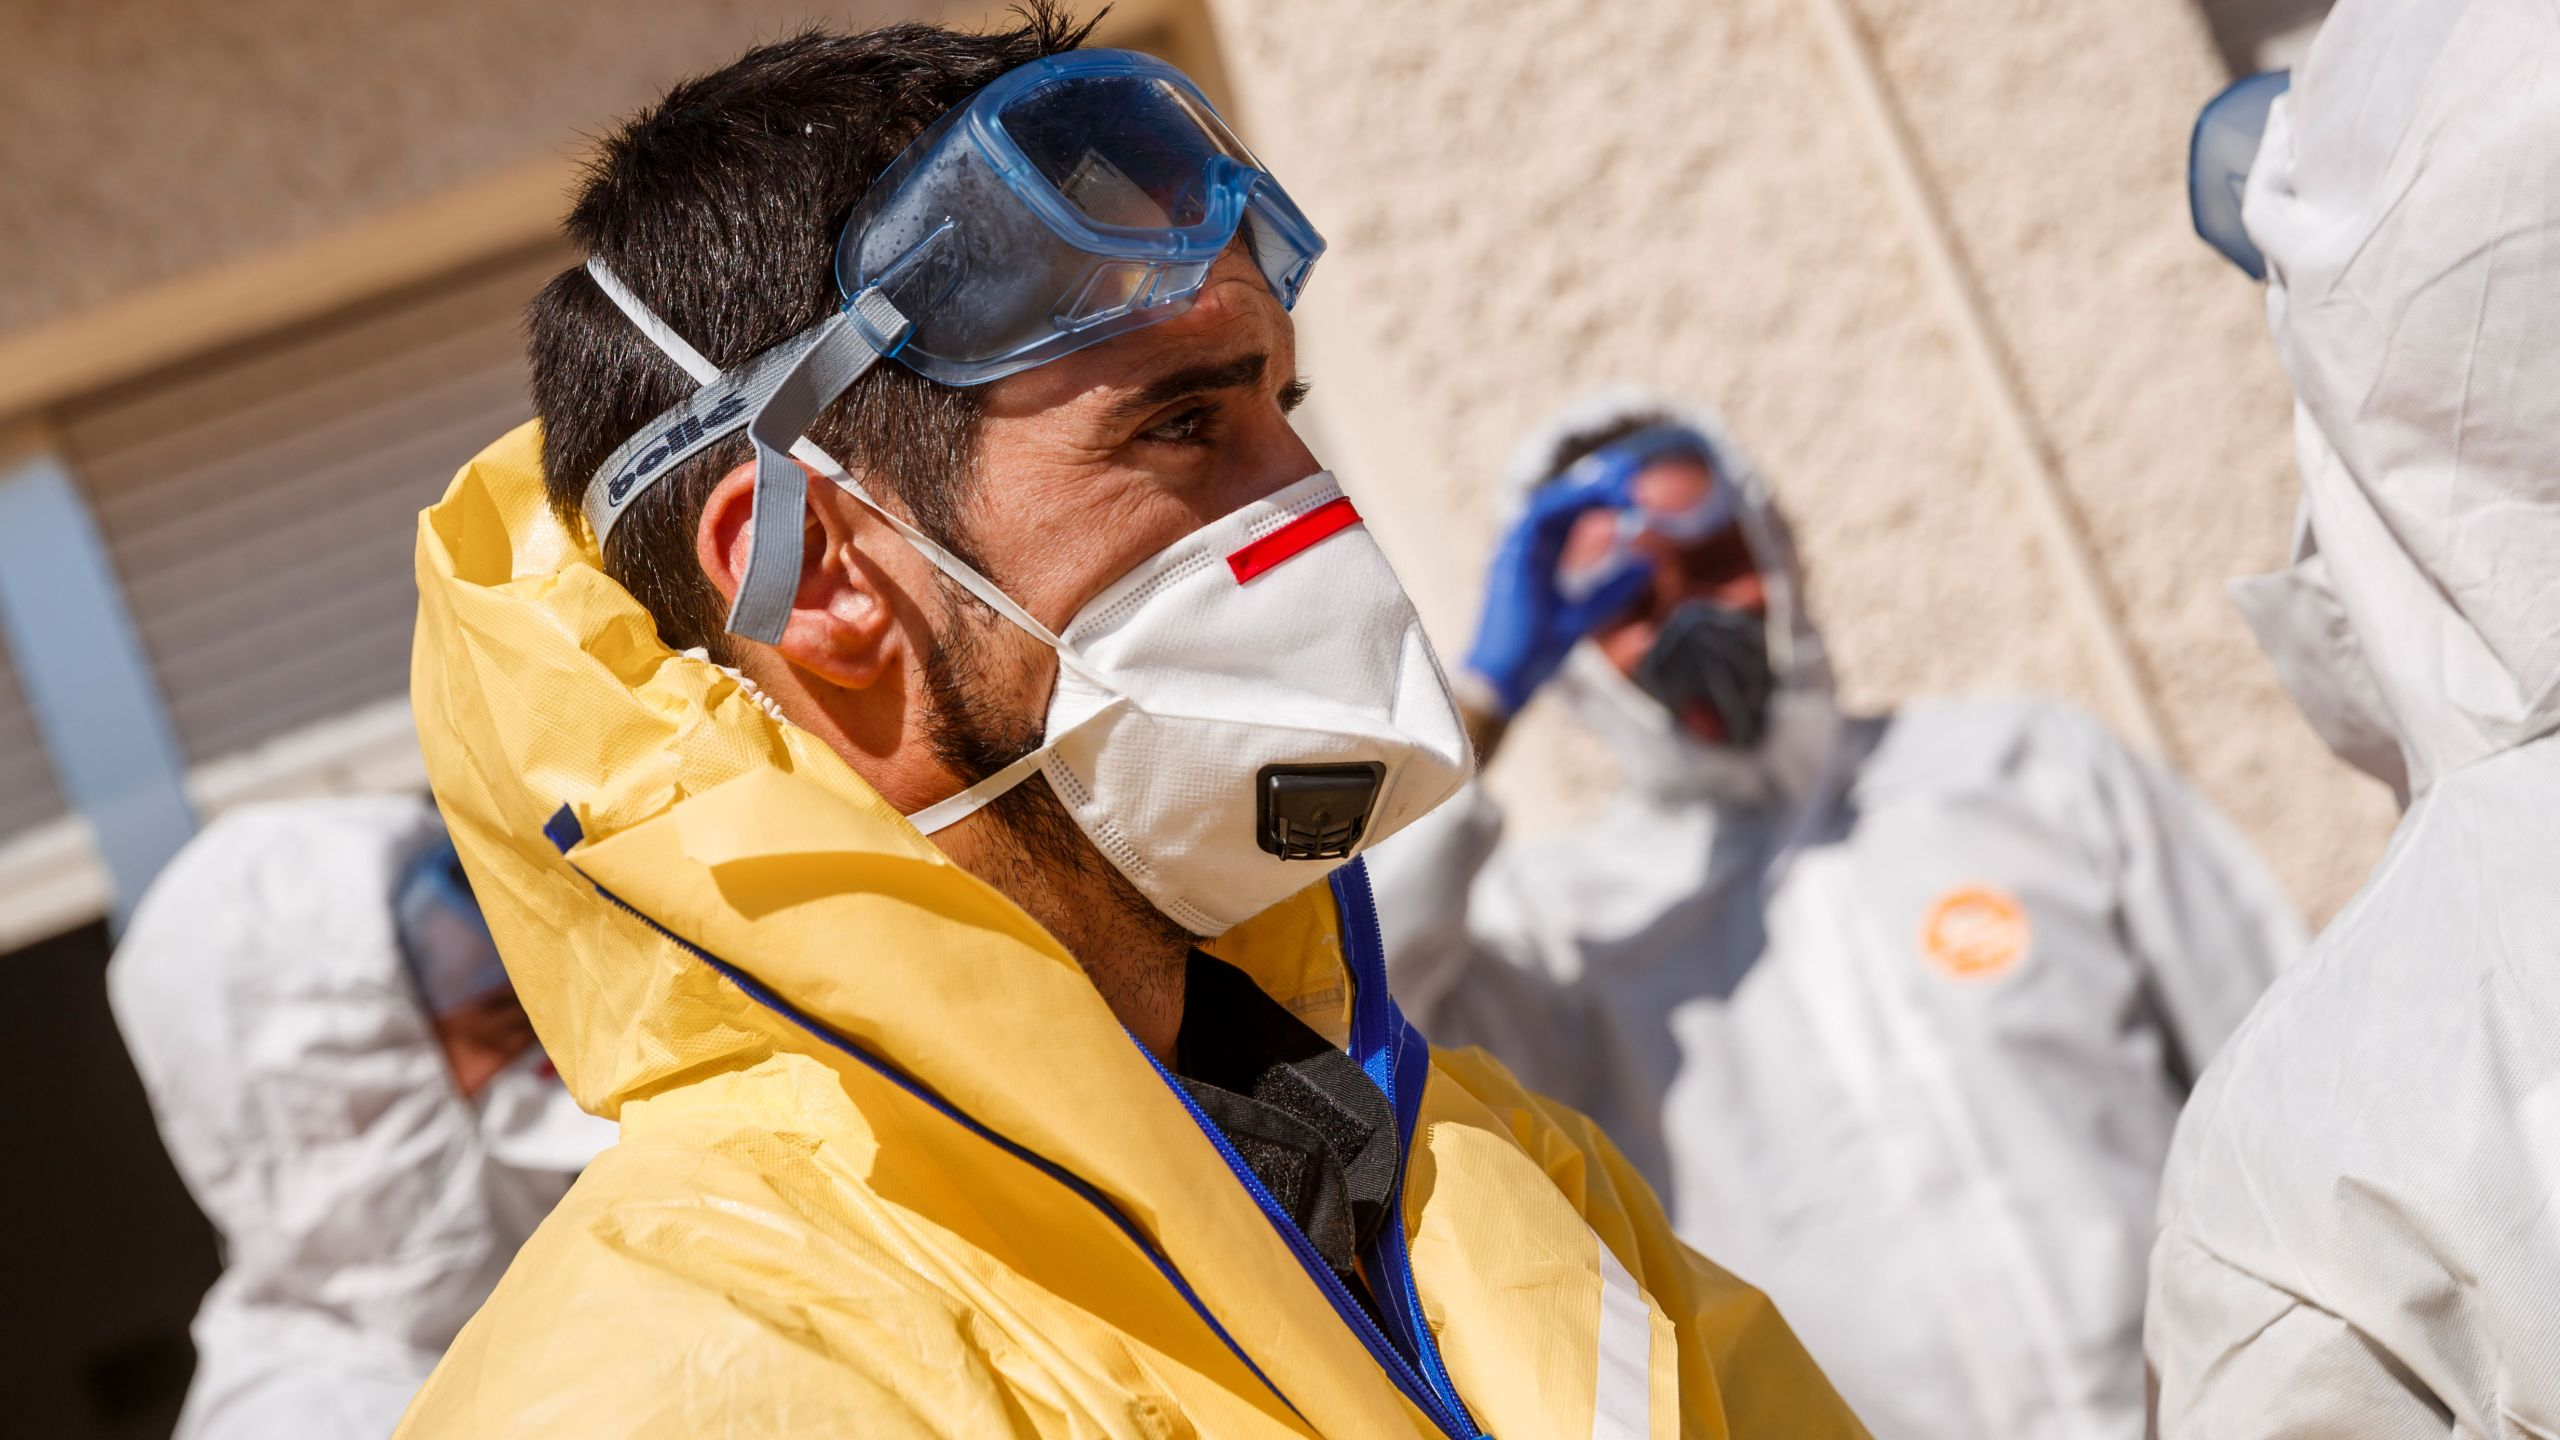 Members of the Military Emergencies Unit (UME) carry out a general disinfection at the Apanid residence for people with physical and intellectual disabilities of all ages in the Getafe suburb of Madrid on March 25, 2020, amid a national lockdown to fight the spread of the COVID-19 coronavirus. (BALDESCA SAMPER/AFP via Getty Images)